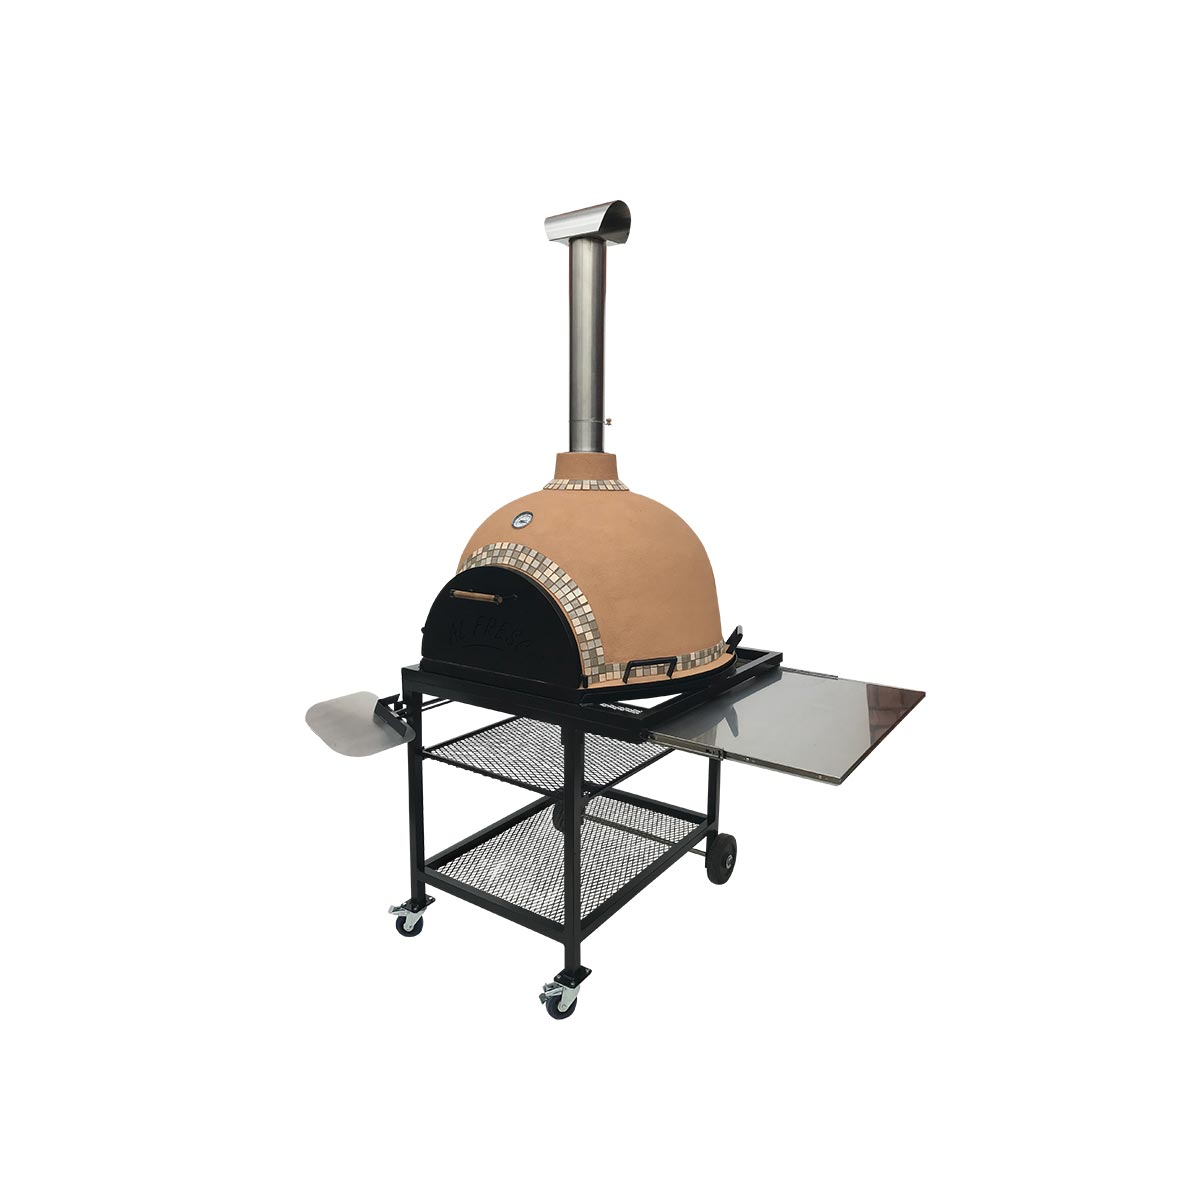 alfresco-festivo-pizza-oven